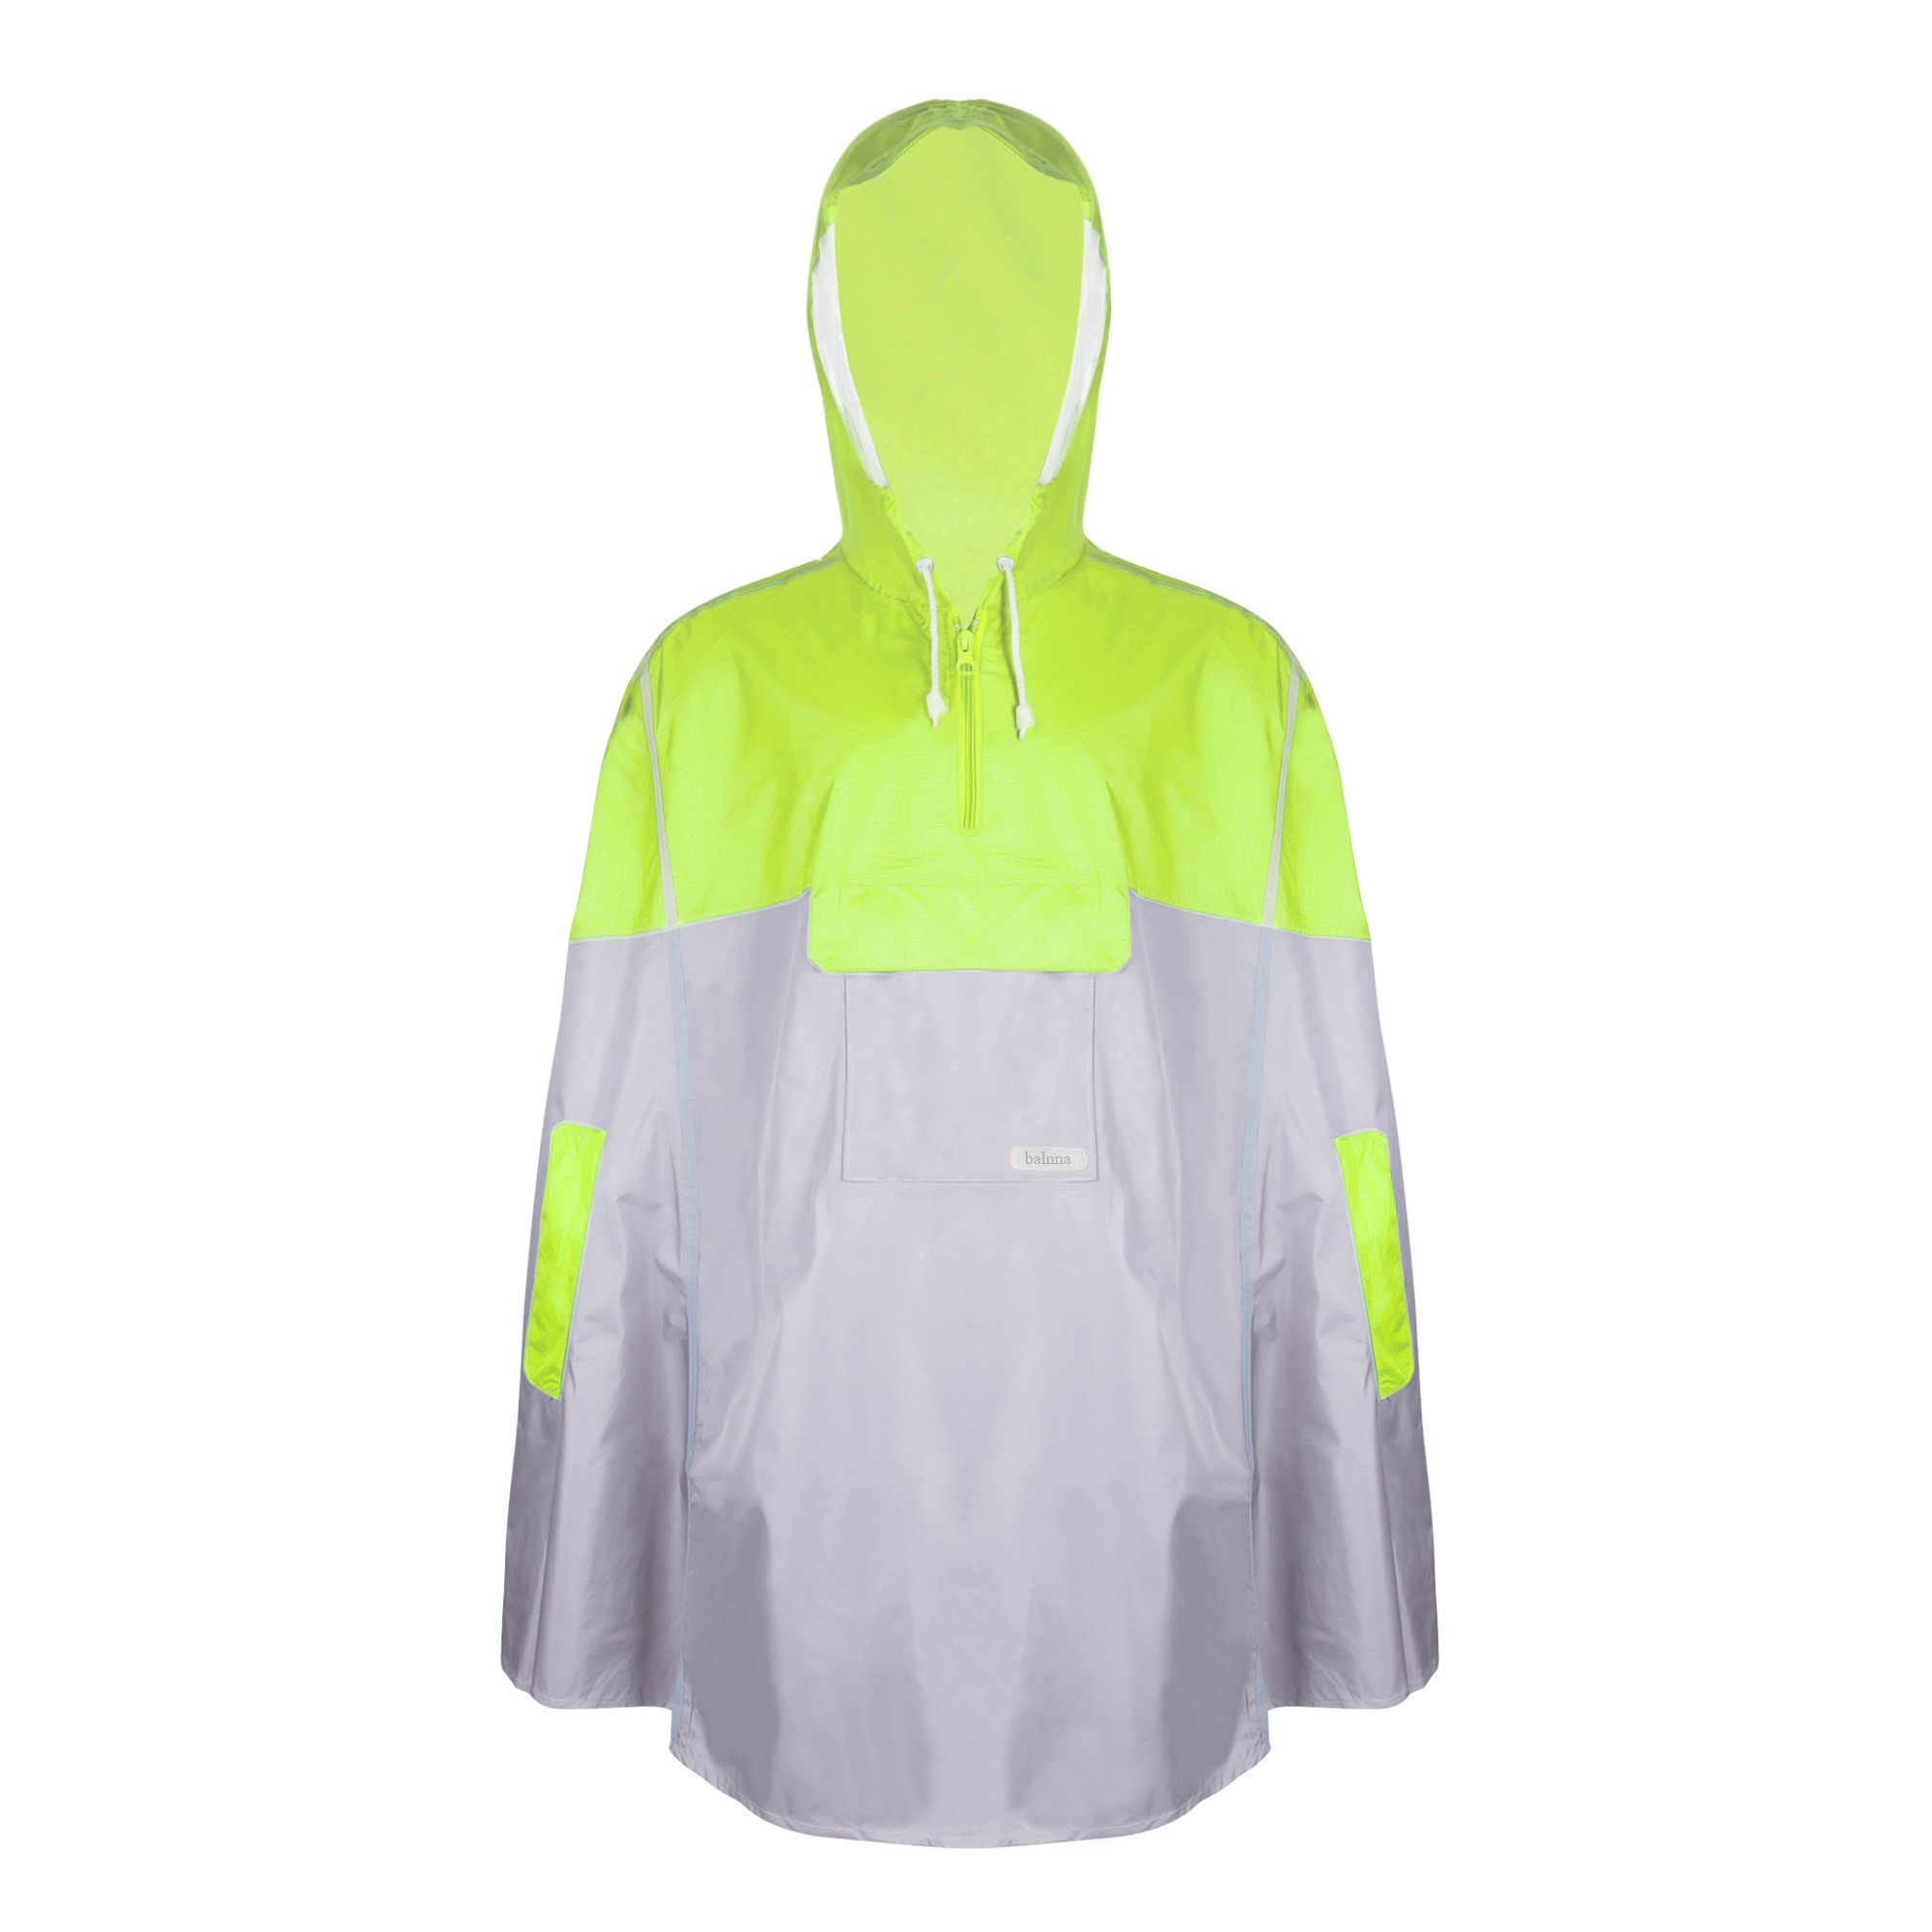 Balnna Rain Poncho with Hoods and Zipper Waterproof Raincoat for Outdoor Activities-Green by Balnna (Image #1)